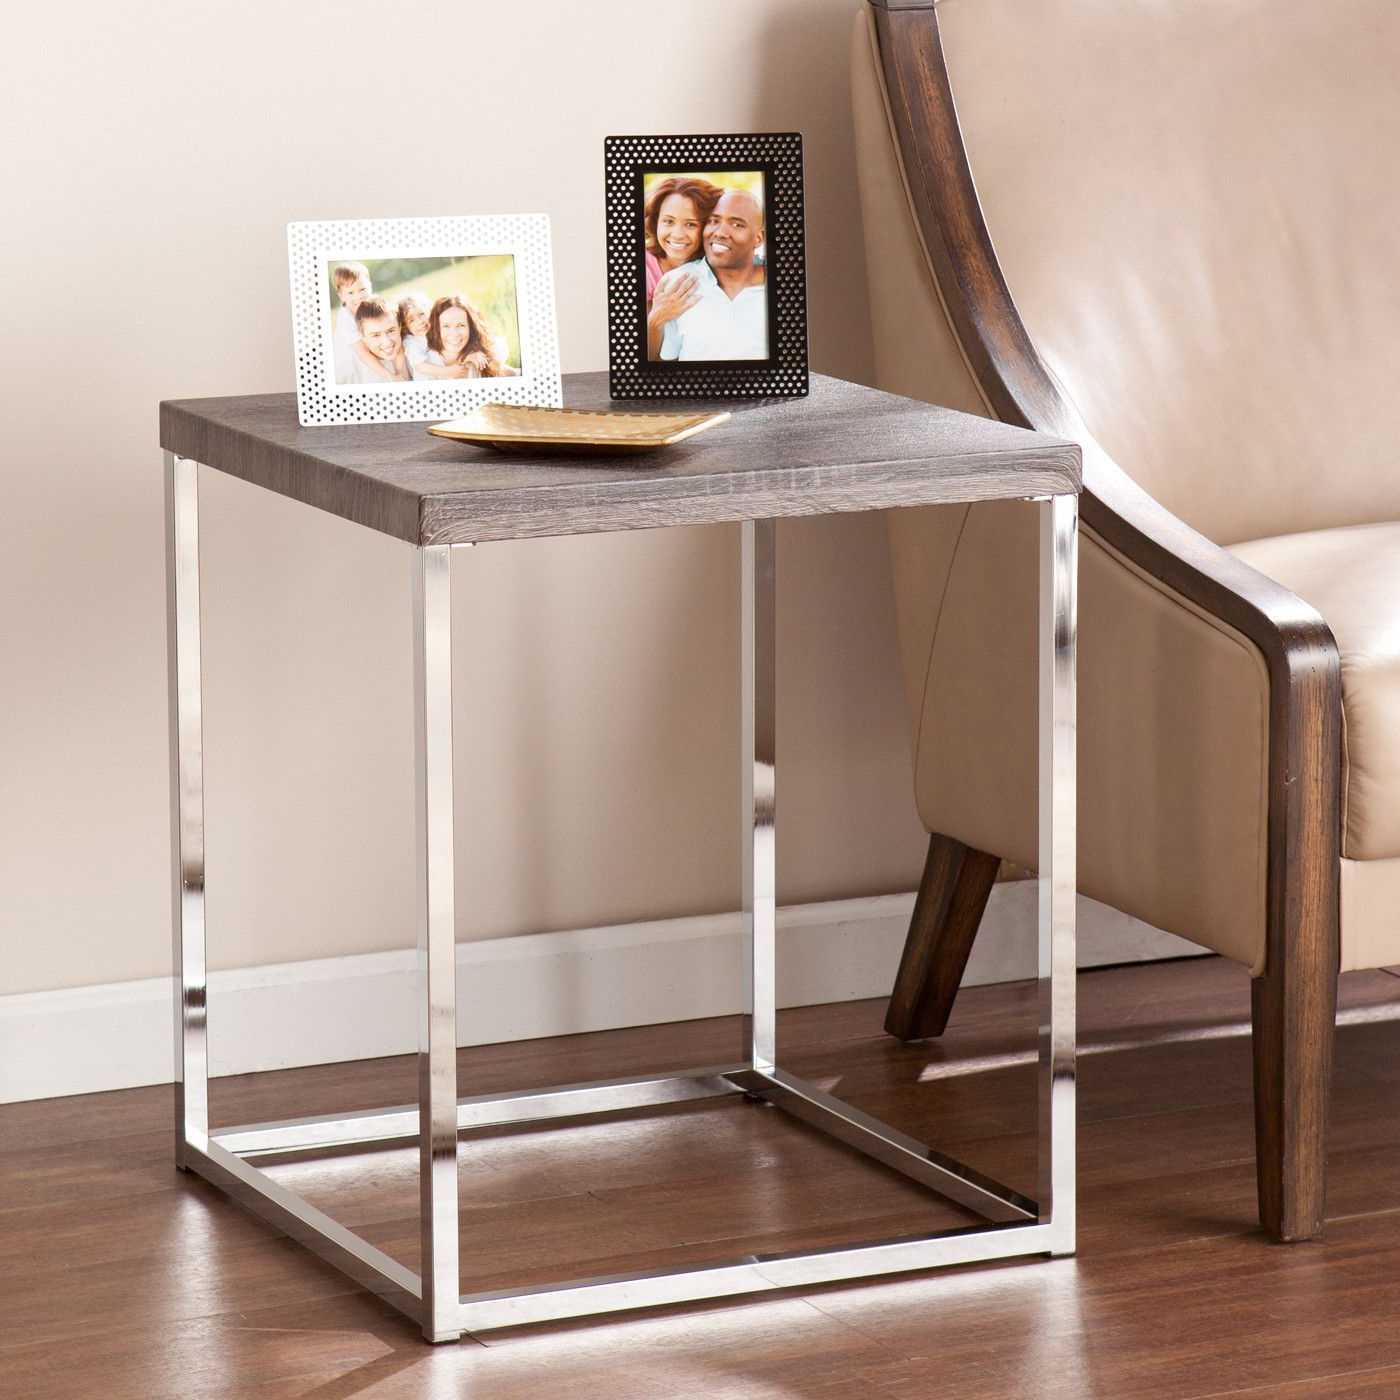 Gellar End Table | Products | Pinterest | Products Throughout Era Limestone Console Tables (View 10 of 20)